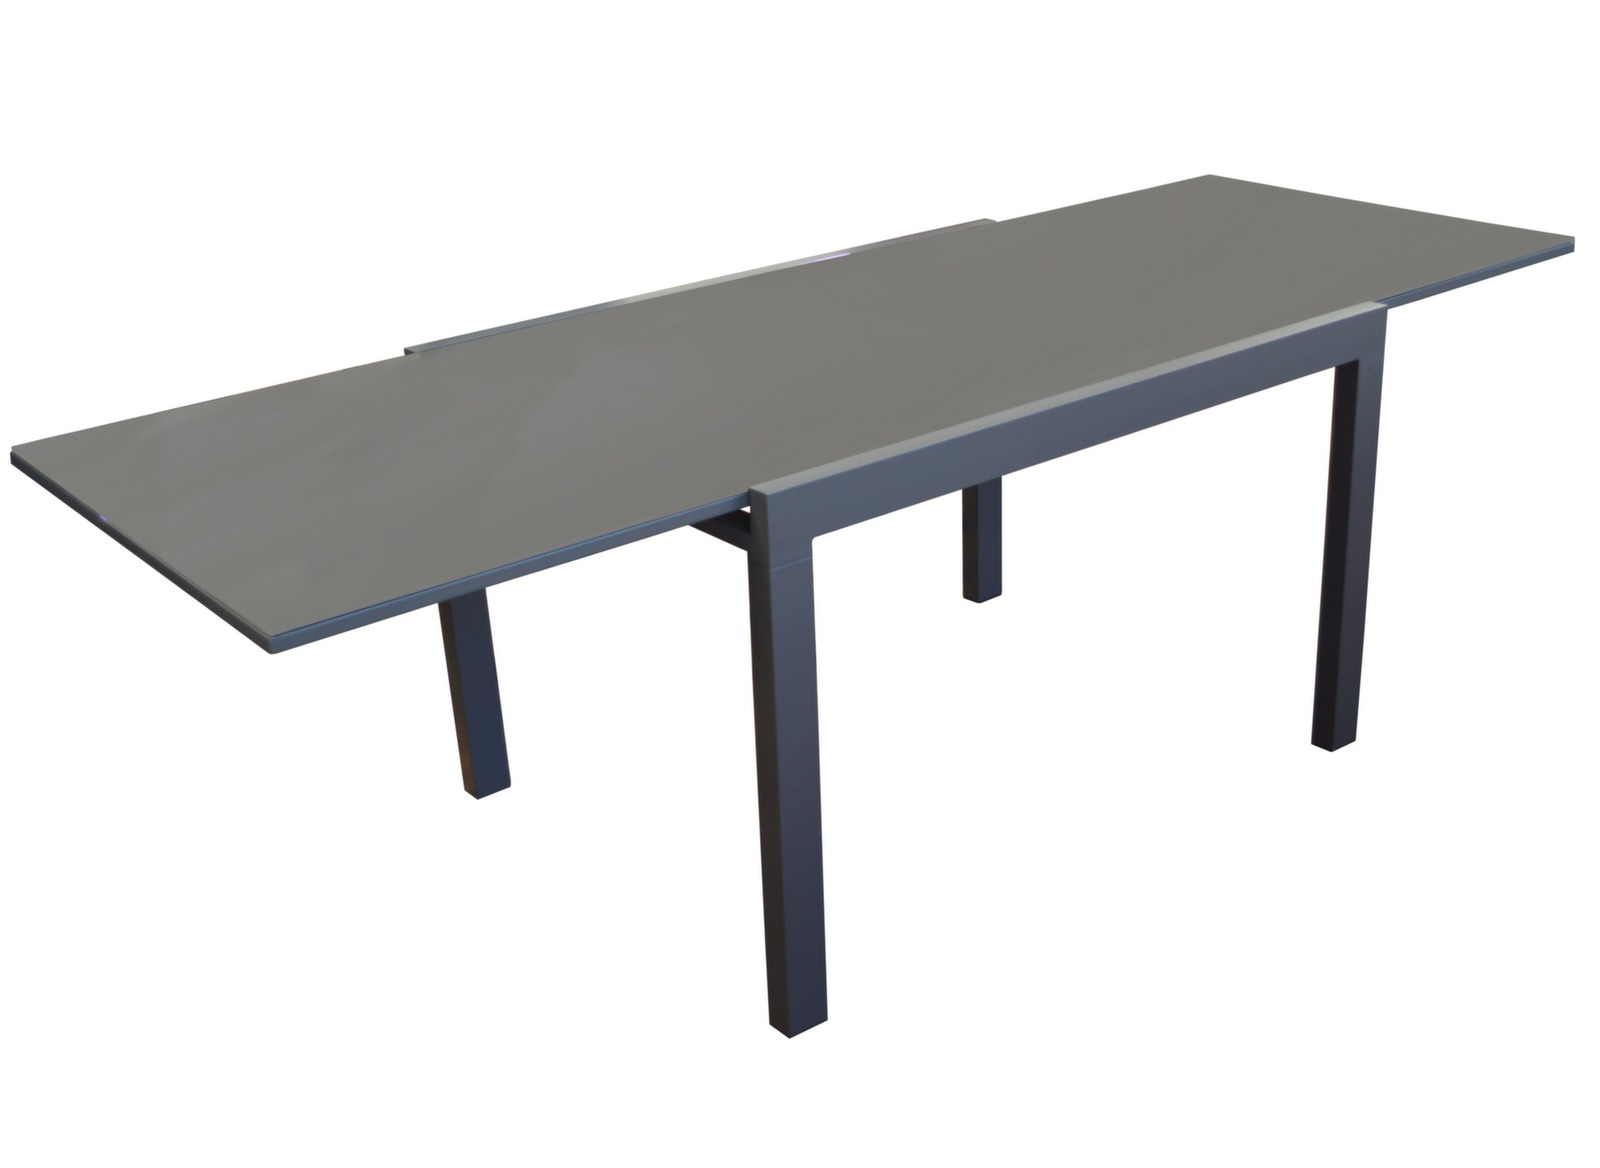 table elise 170270 cm - Table De Salon De Jardin